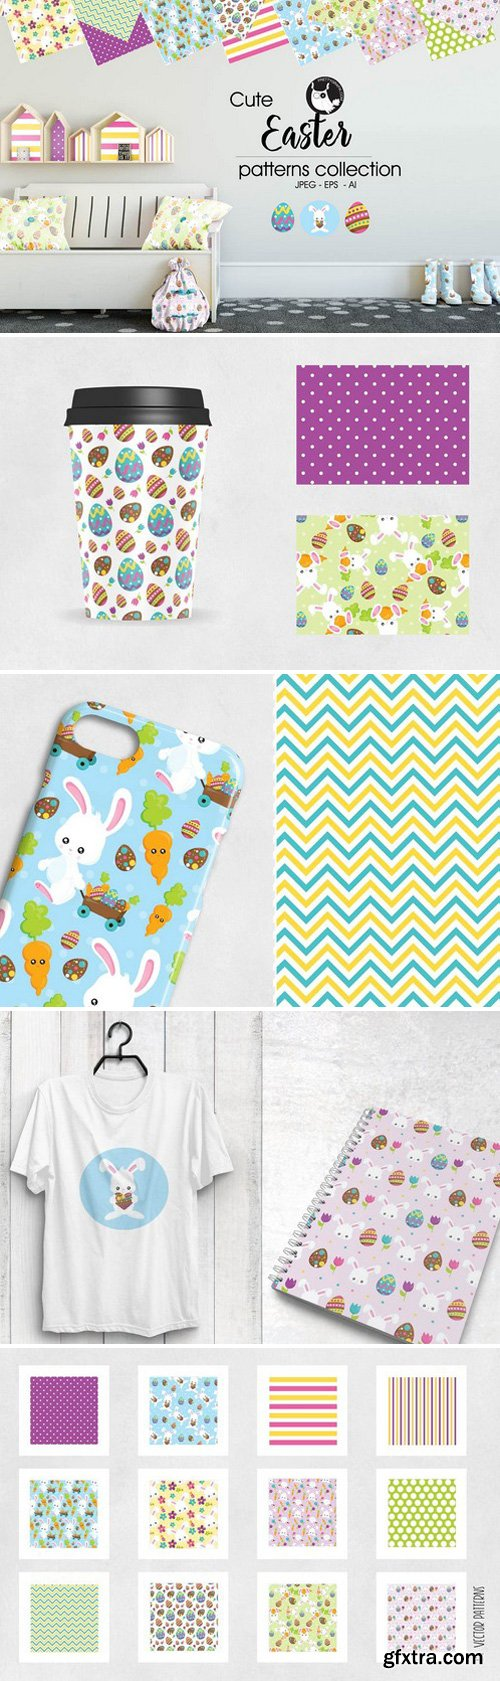 CM - EASTER Pattern collection 2024402